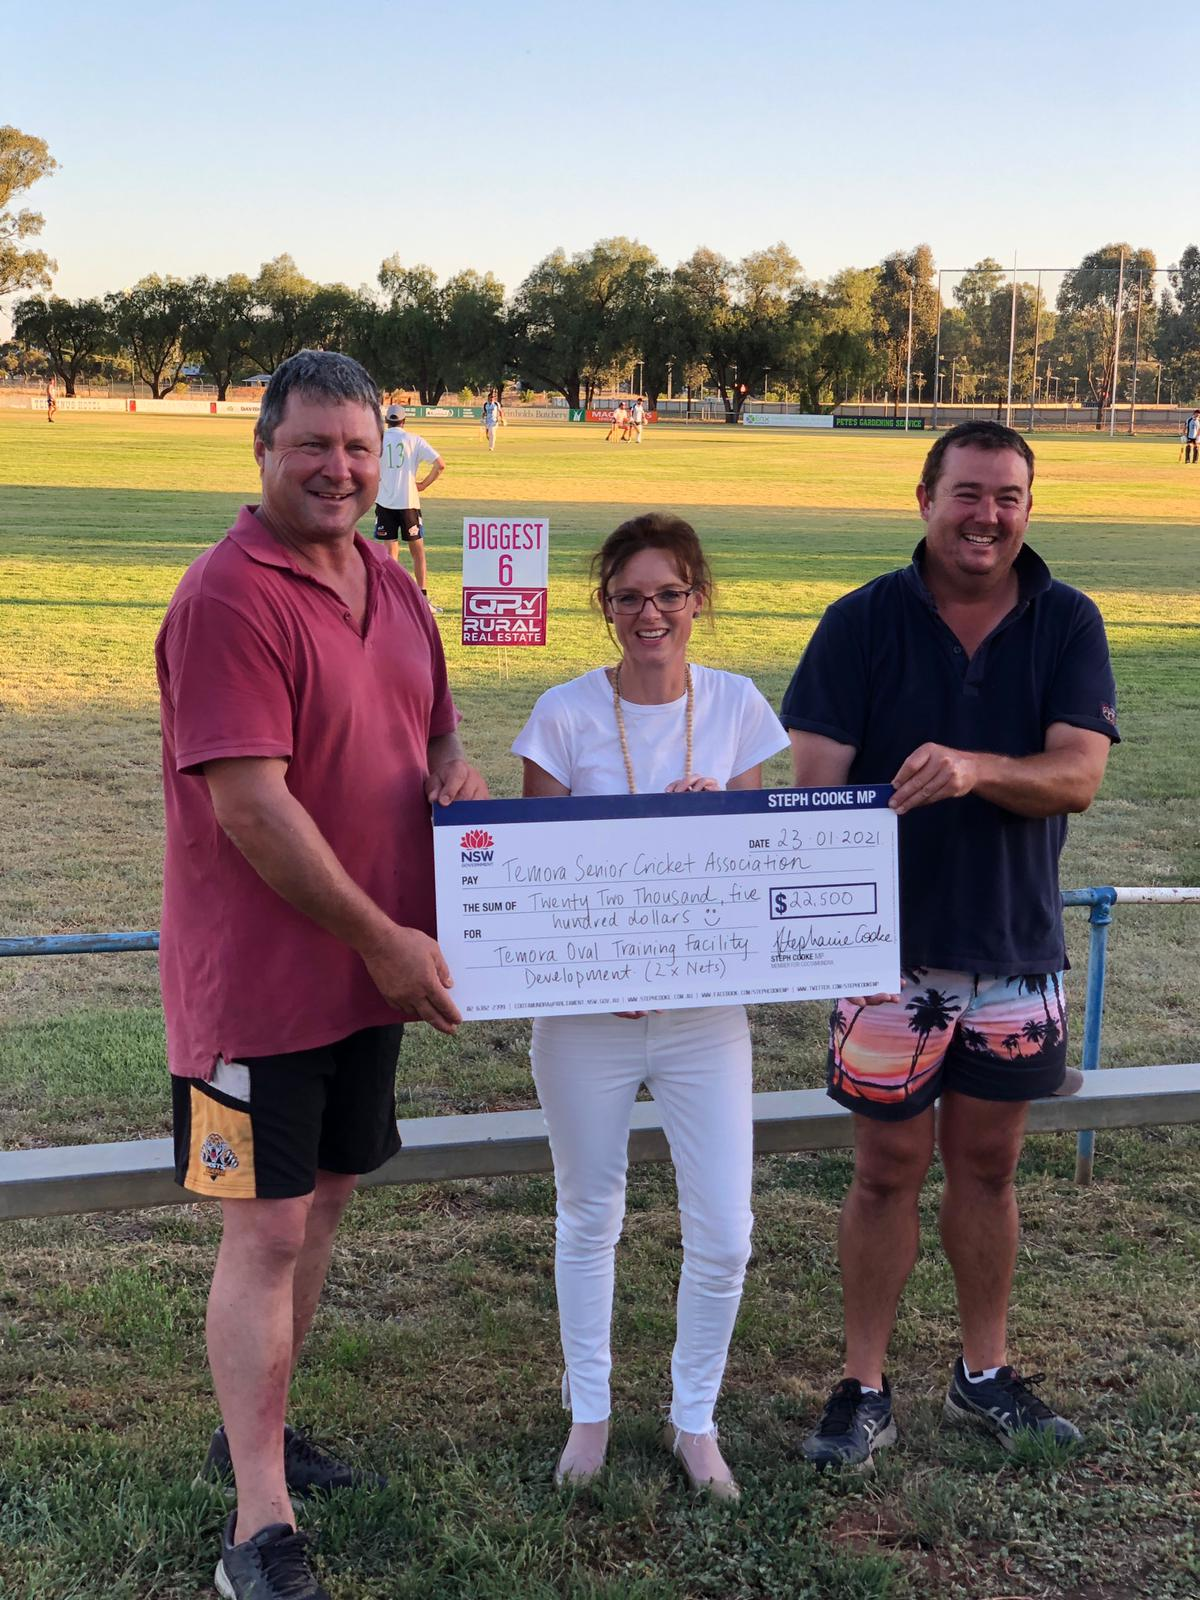 Peter Stimson, Steph Cooke MP and Lincoln Macauley hold a large cheque and stand in front of a sports oval with cricket nets seen in the background.